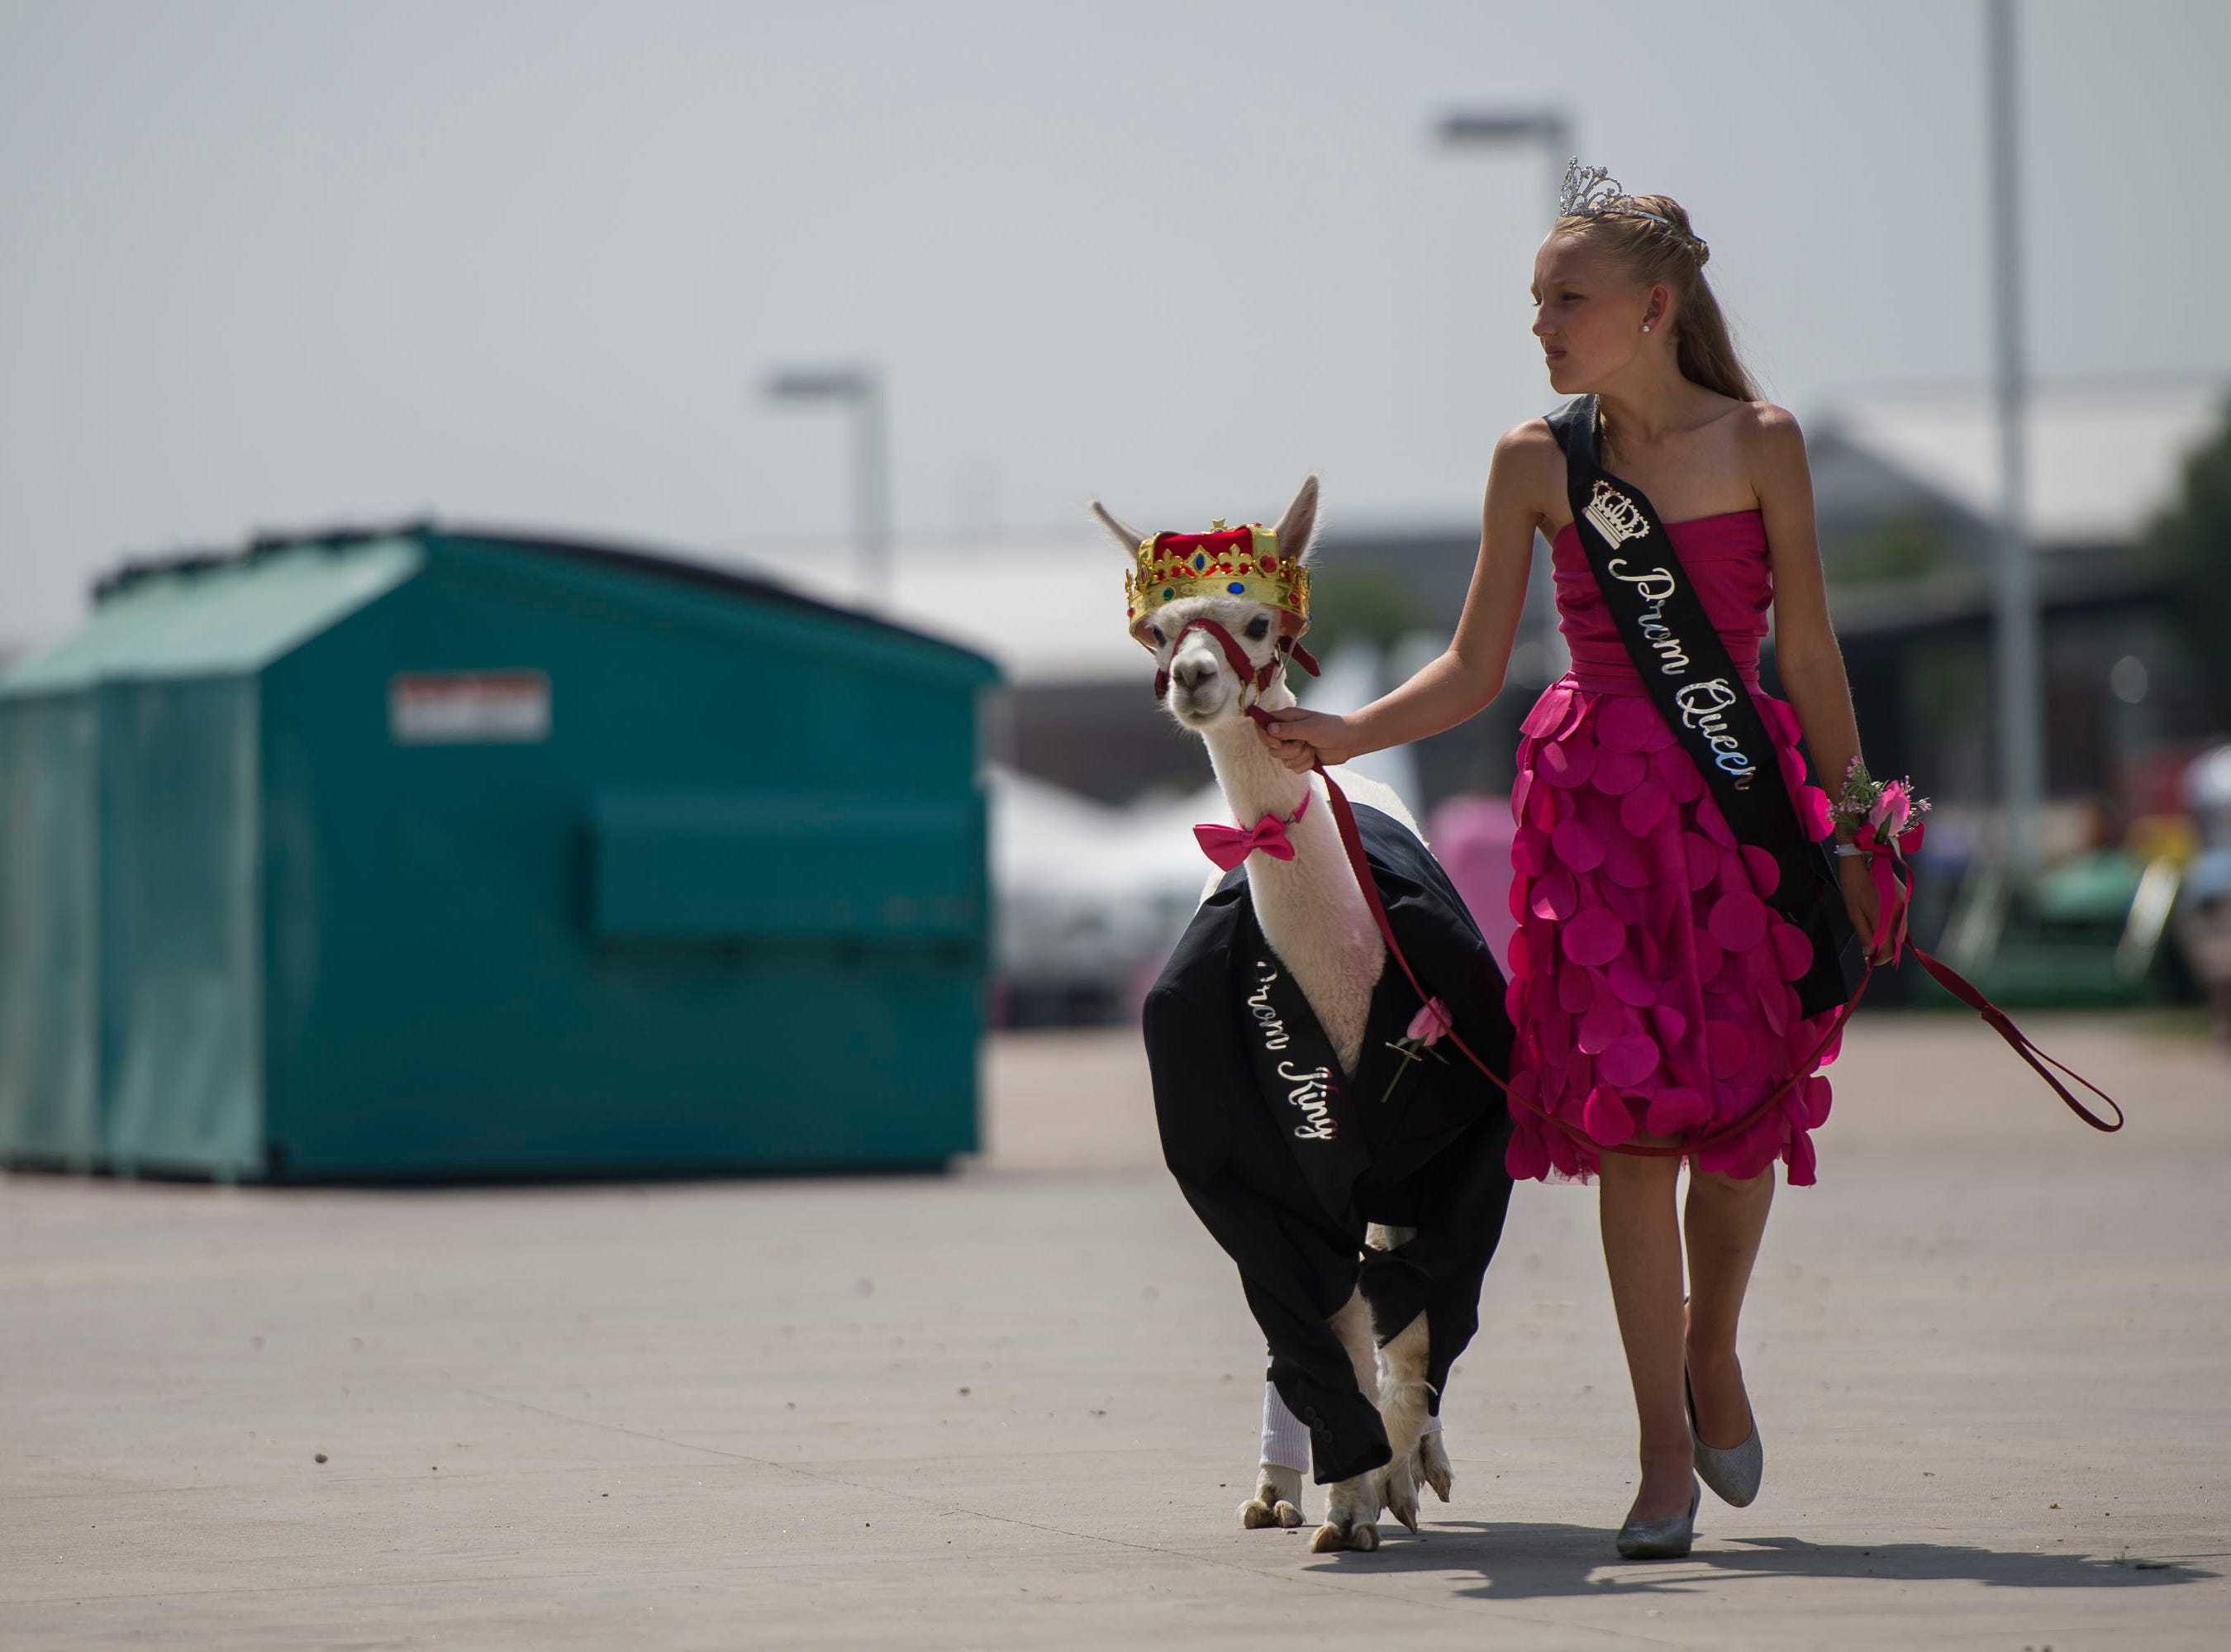 Kashleigh Kilker walks her alpaca, Larry, outside to calm him after getting dressed as her prom king before the costume contest at the Larimer County Fair on Thursday, Aug. 2, 2018, at The Ranch Events Complex in Loveland , Colo.